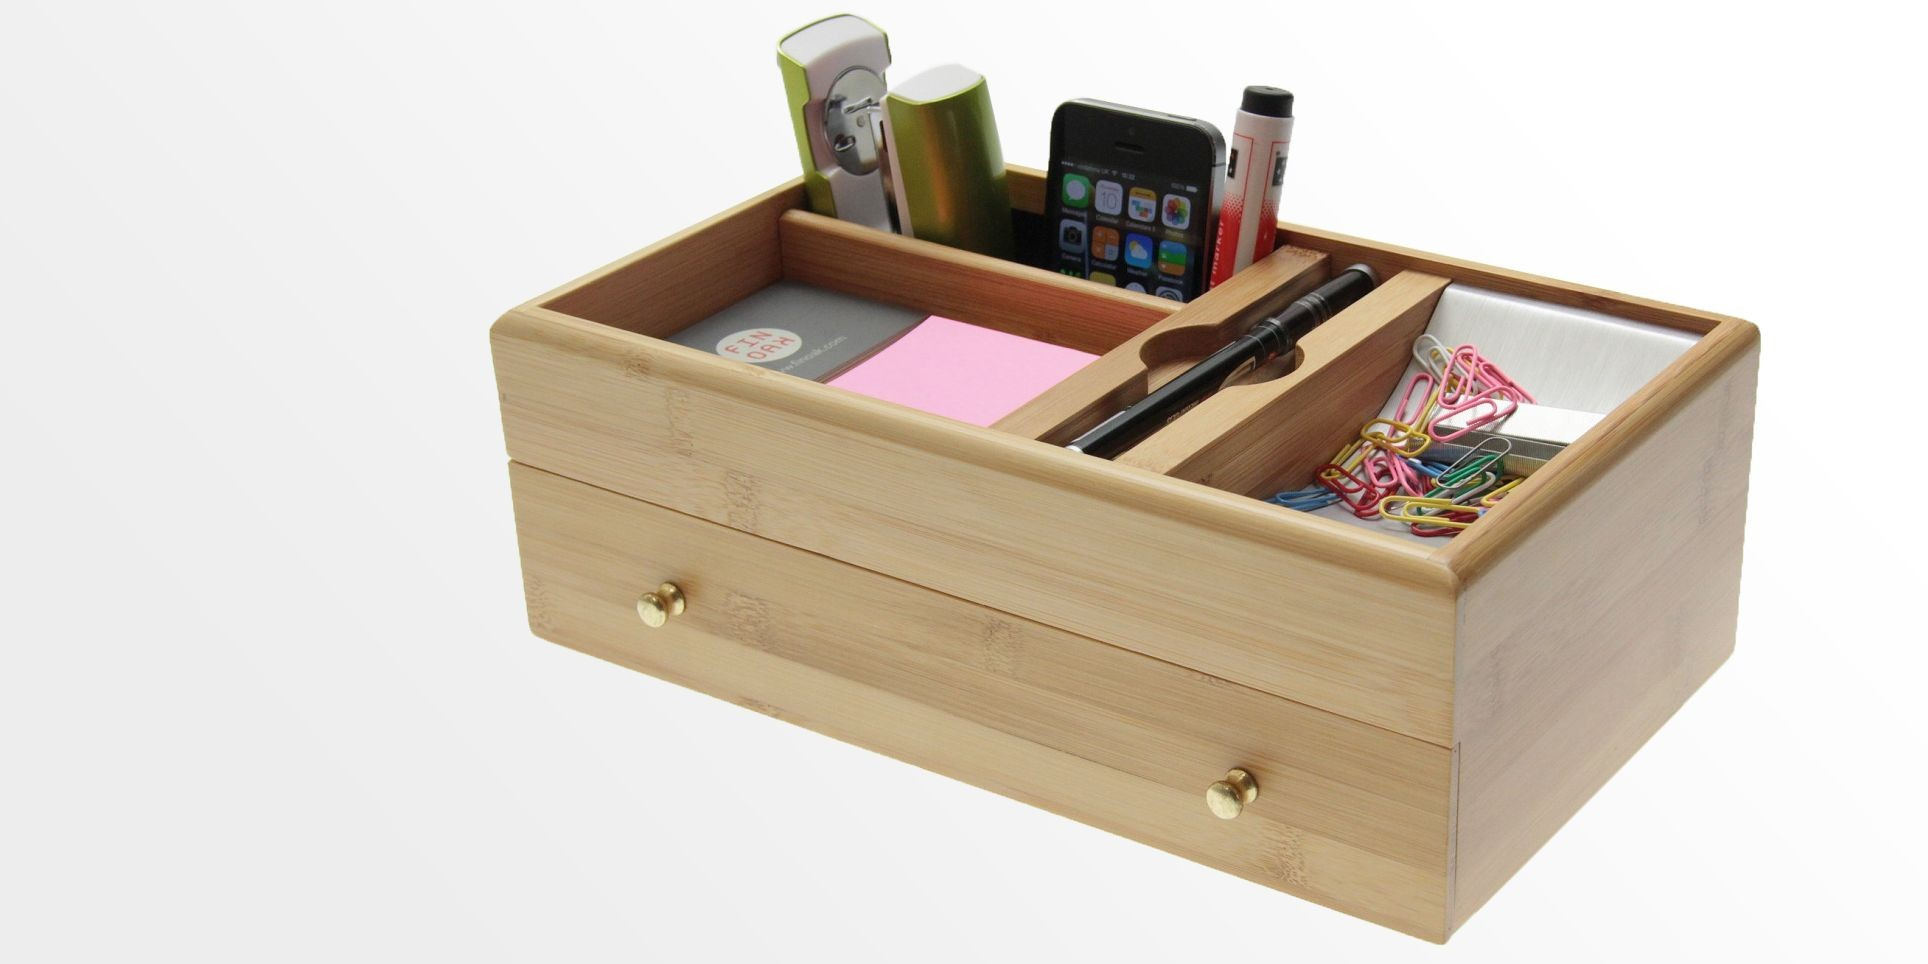 Desk Organiser Stationery Desk Stationery Box Bamboo Desk Tidy Office Supplies